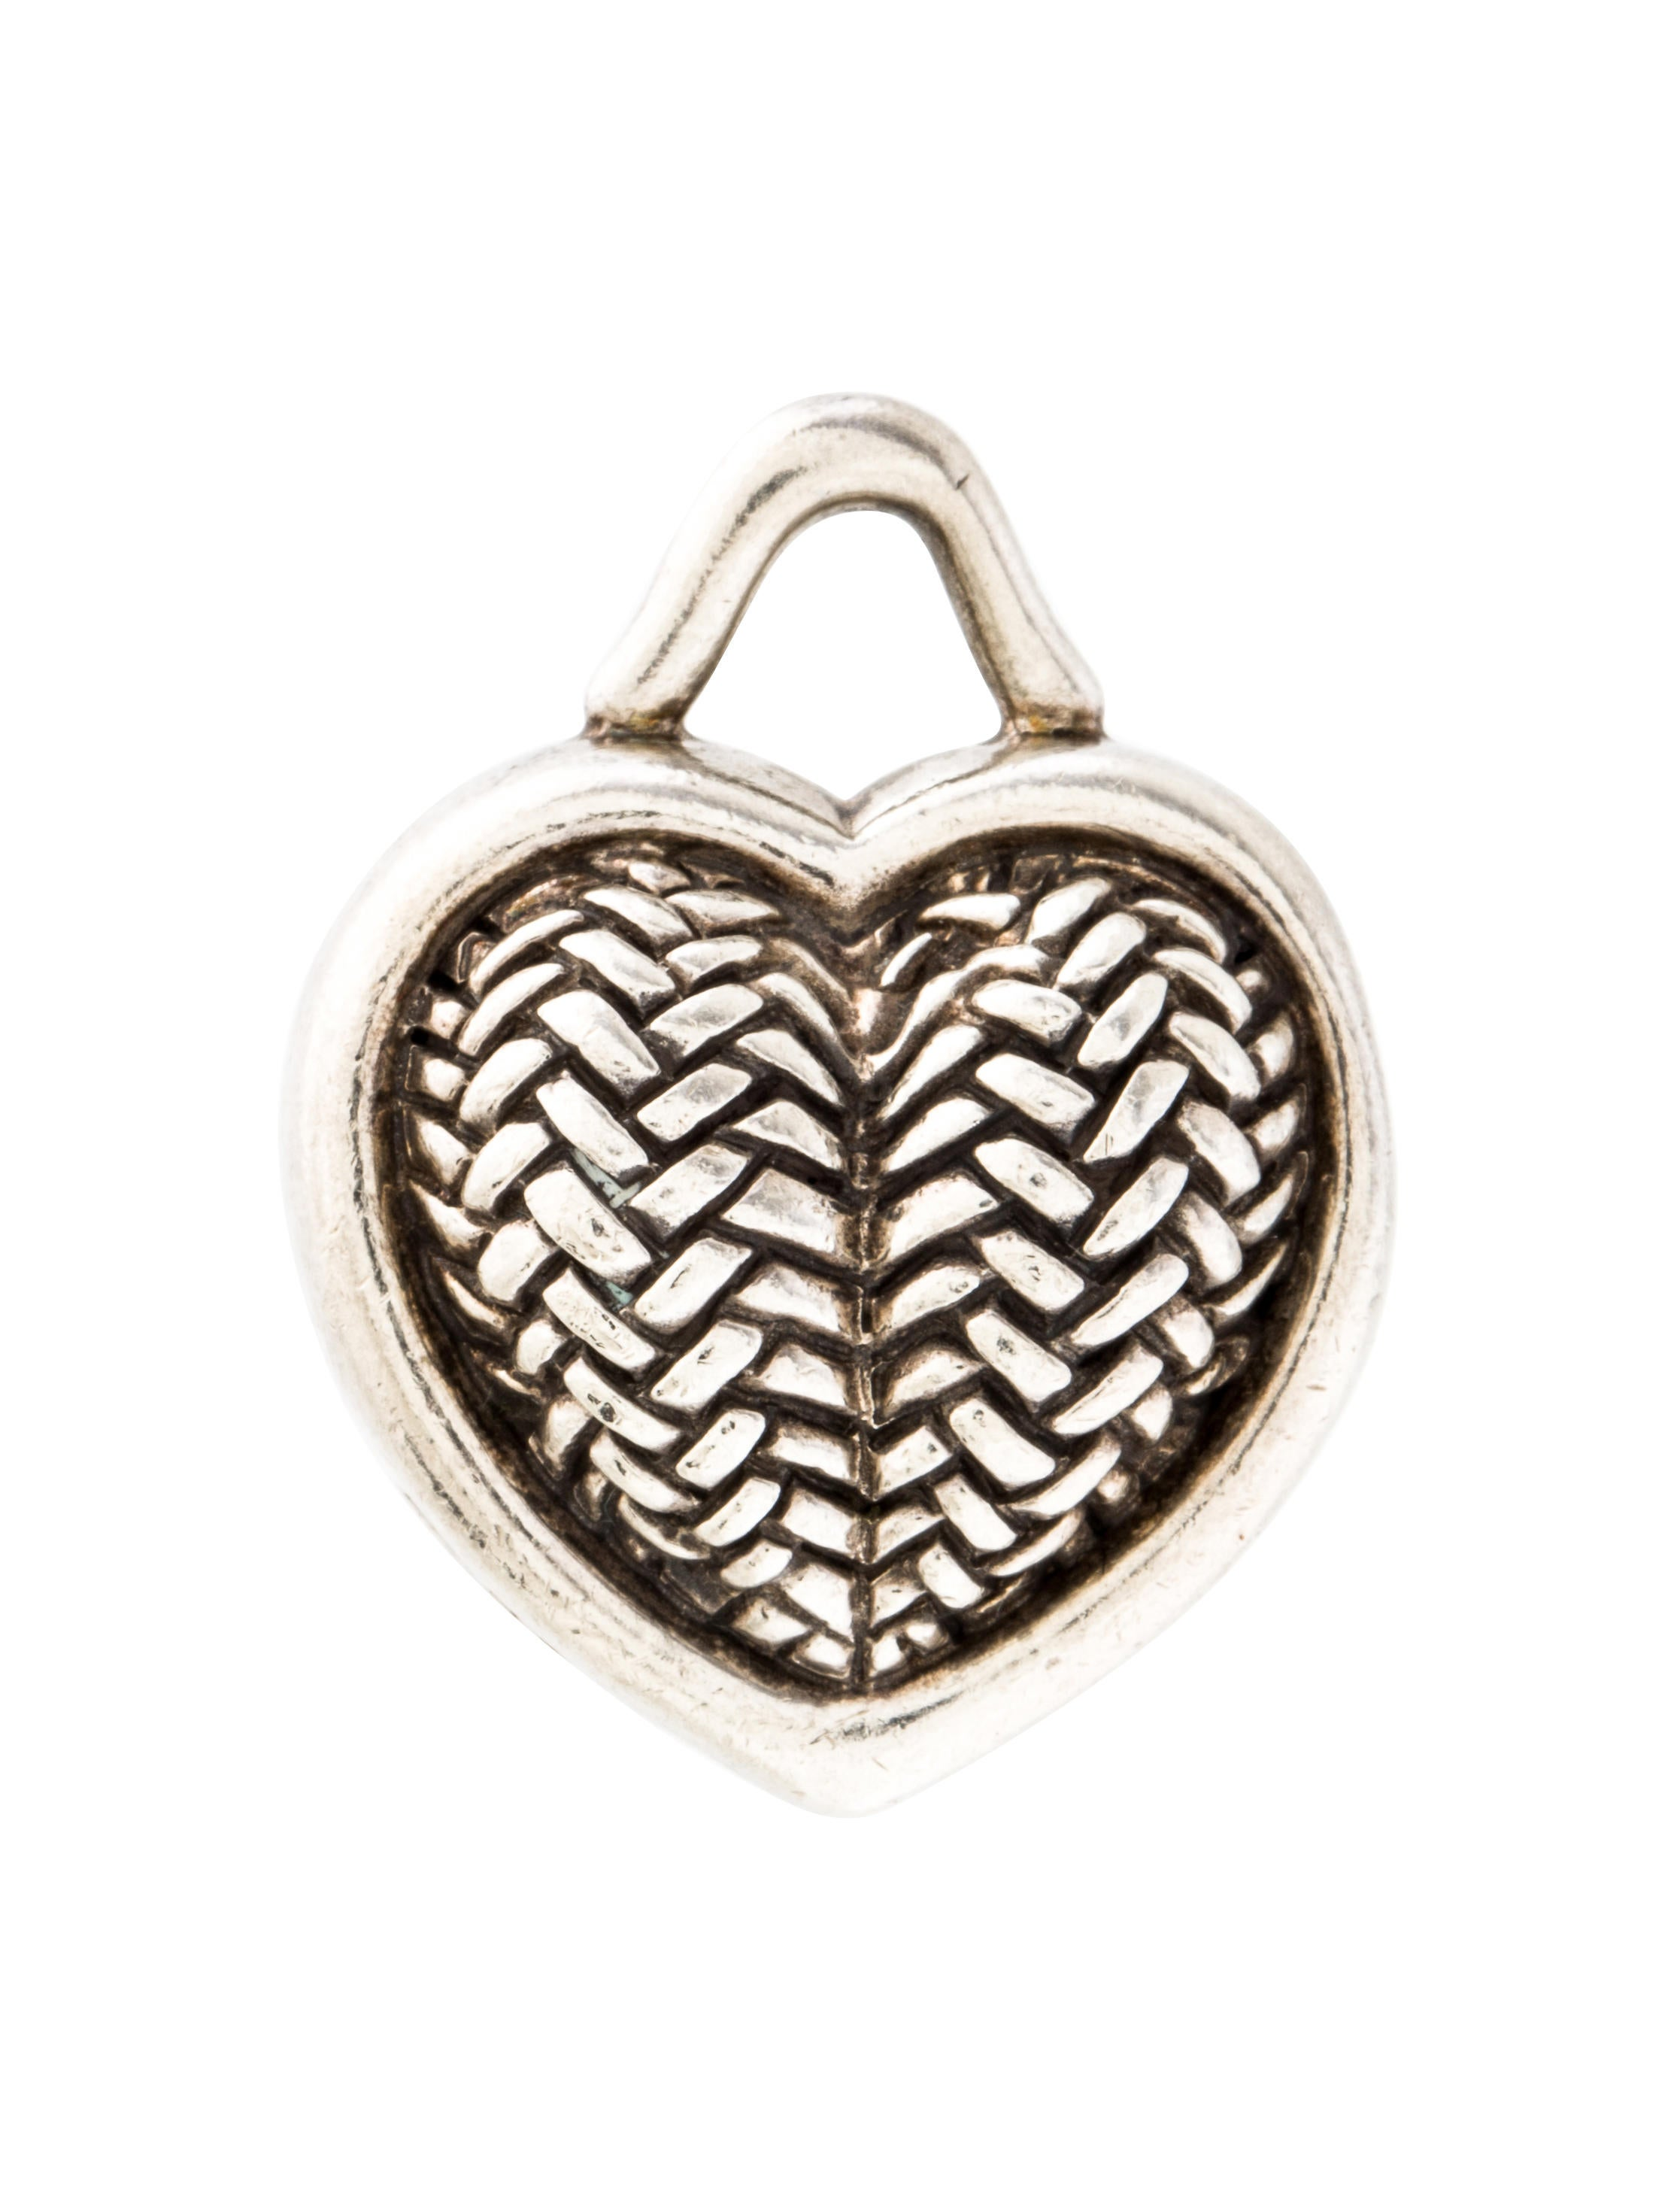 Barry kieselstein cord heart charm pendant necklaces for Barry kieselstein cord jewelry